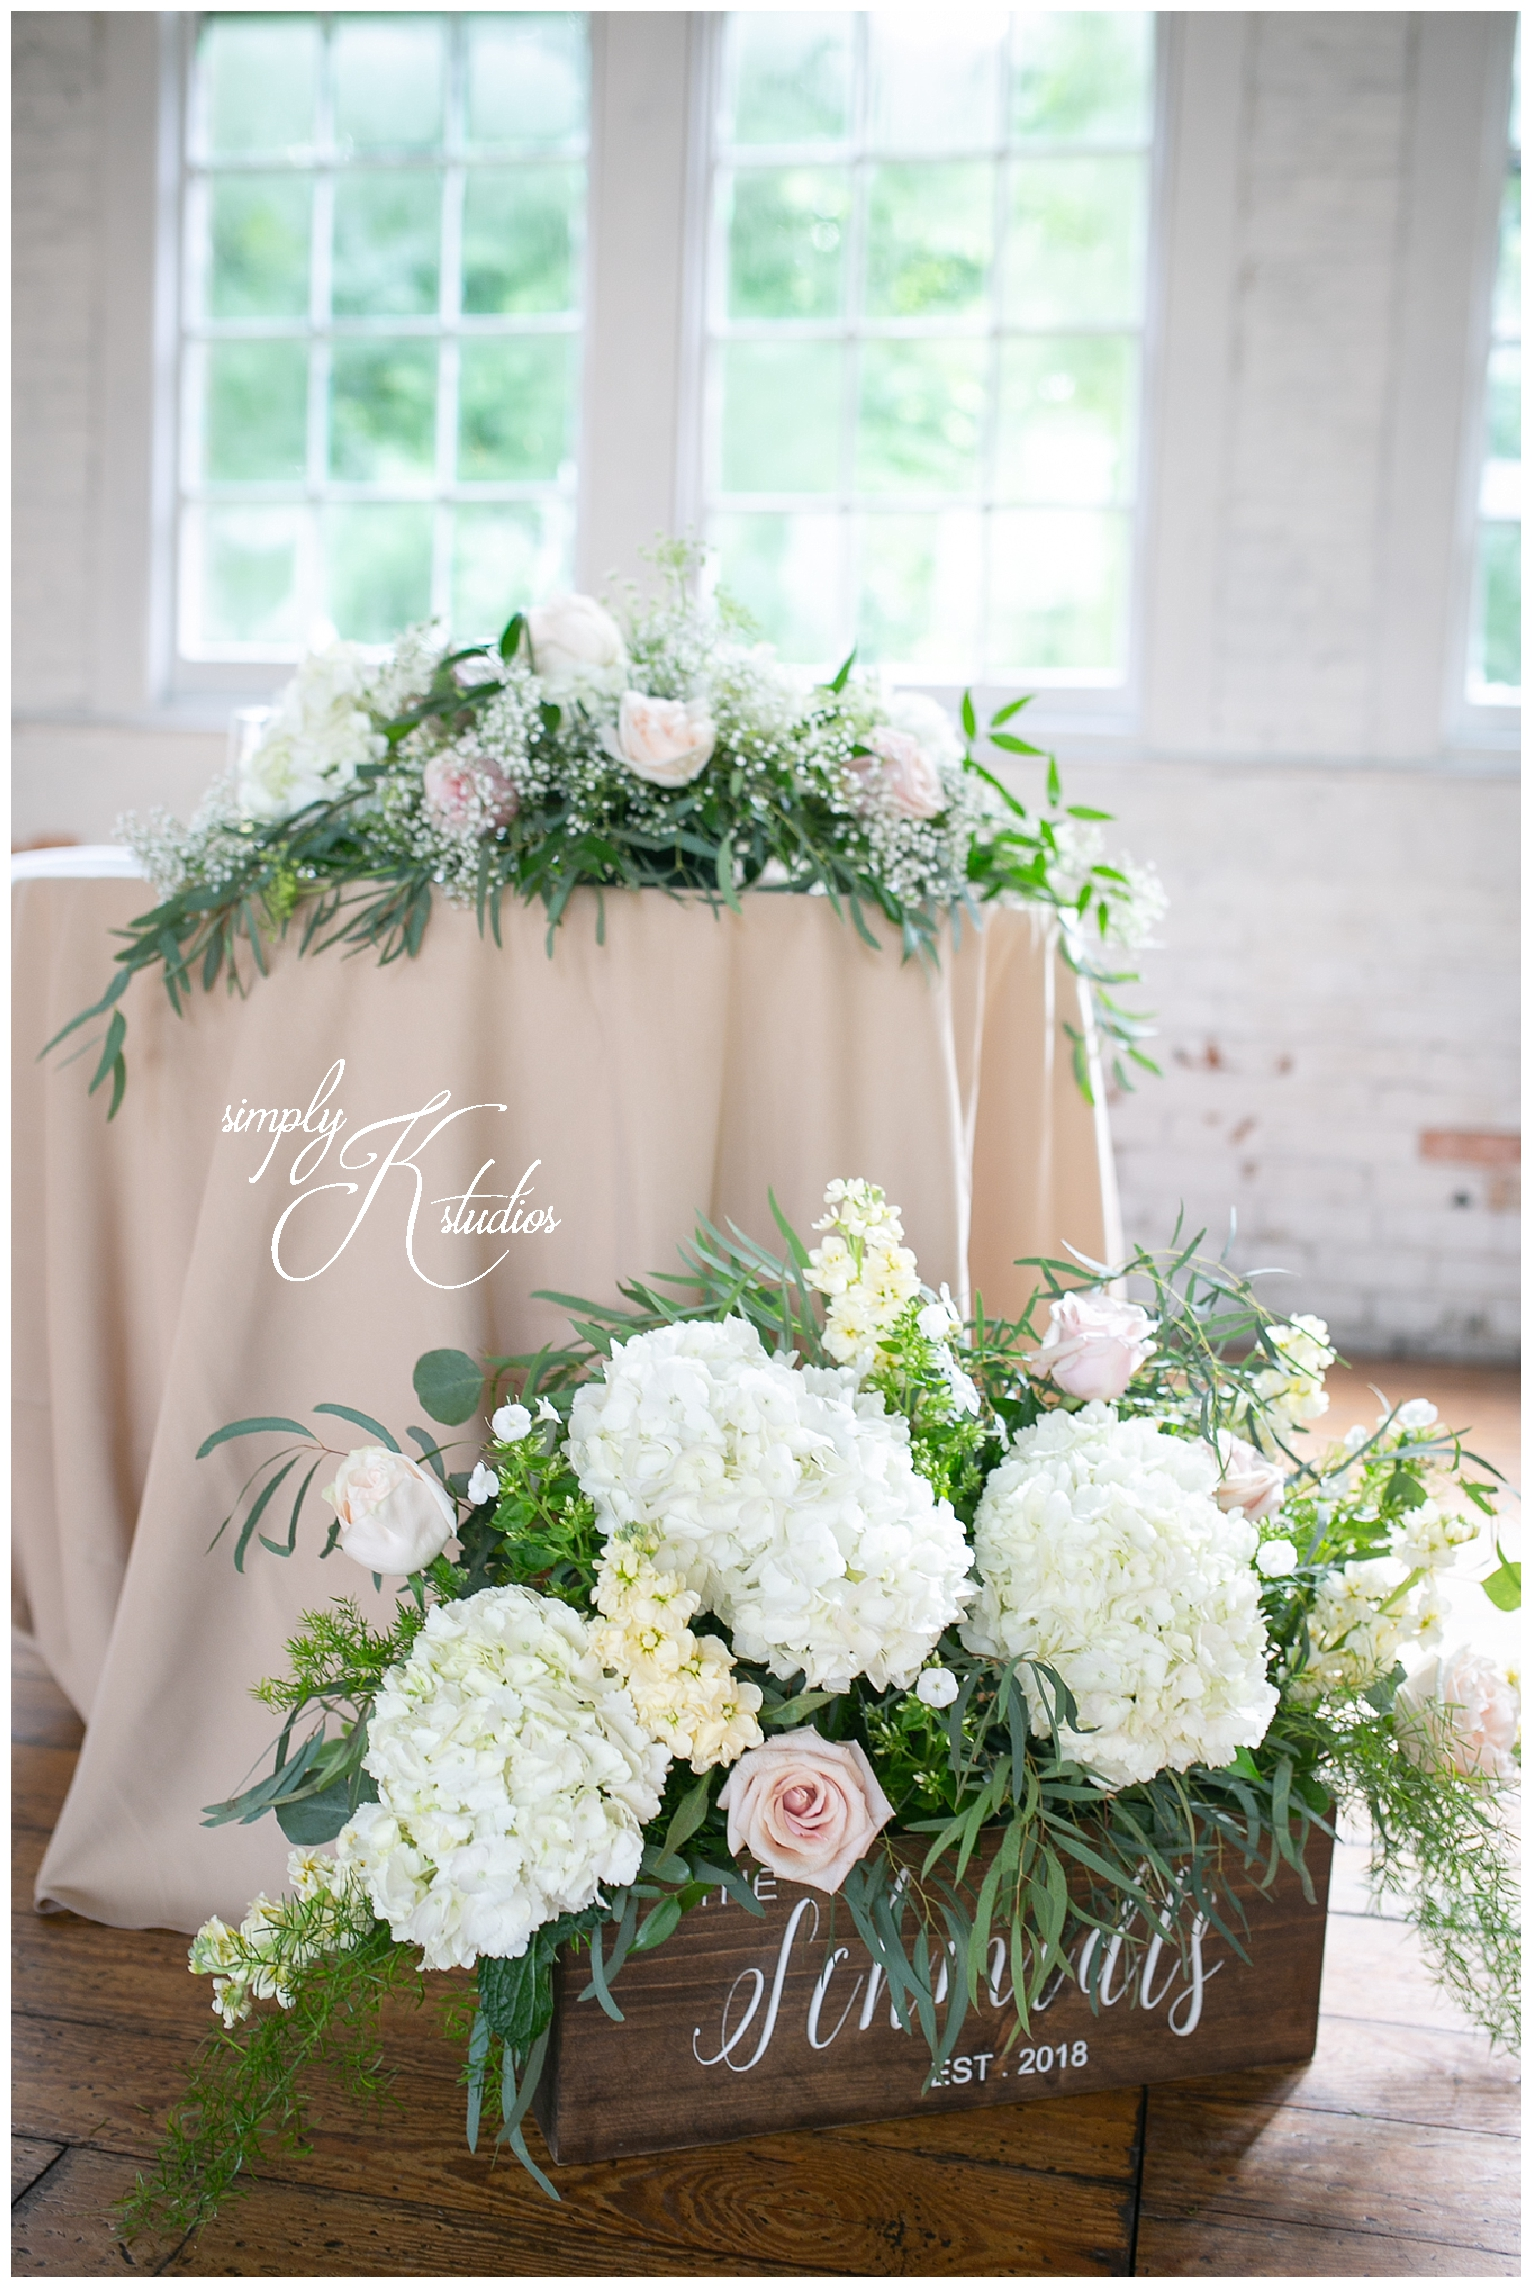 Sweetheart Table at The Lace Factory.jpg